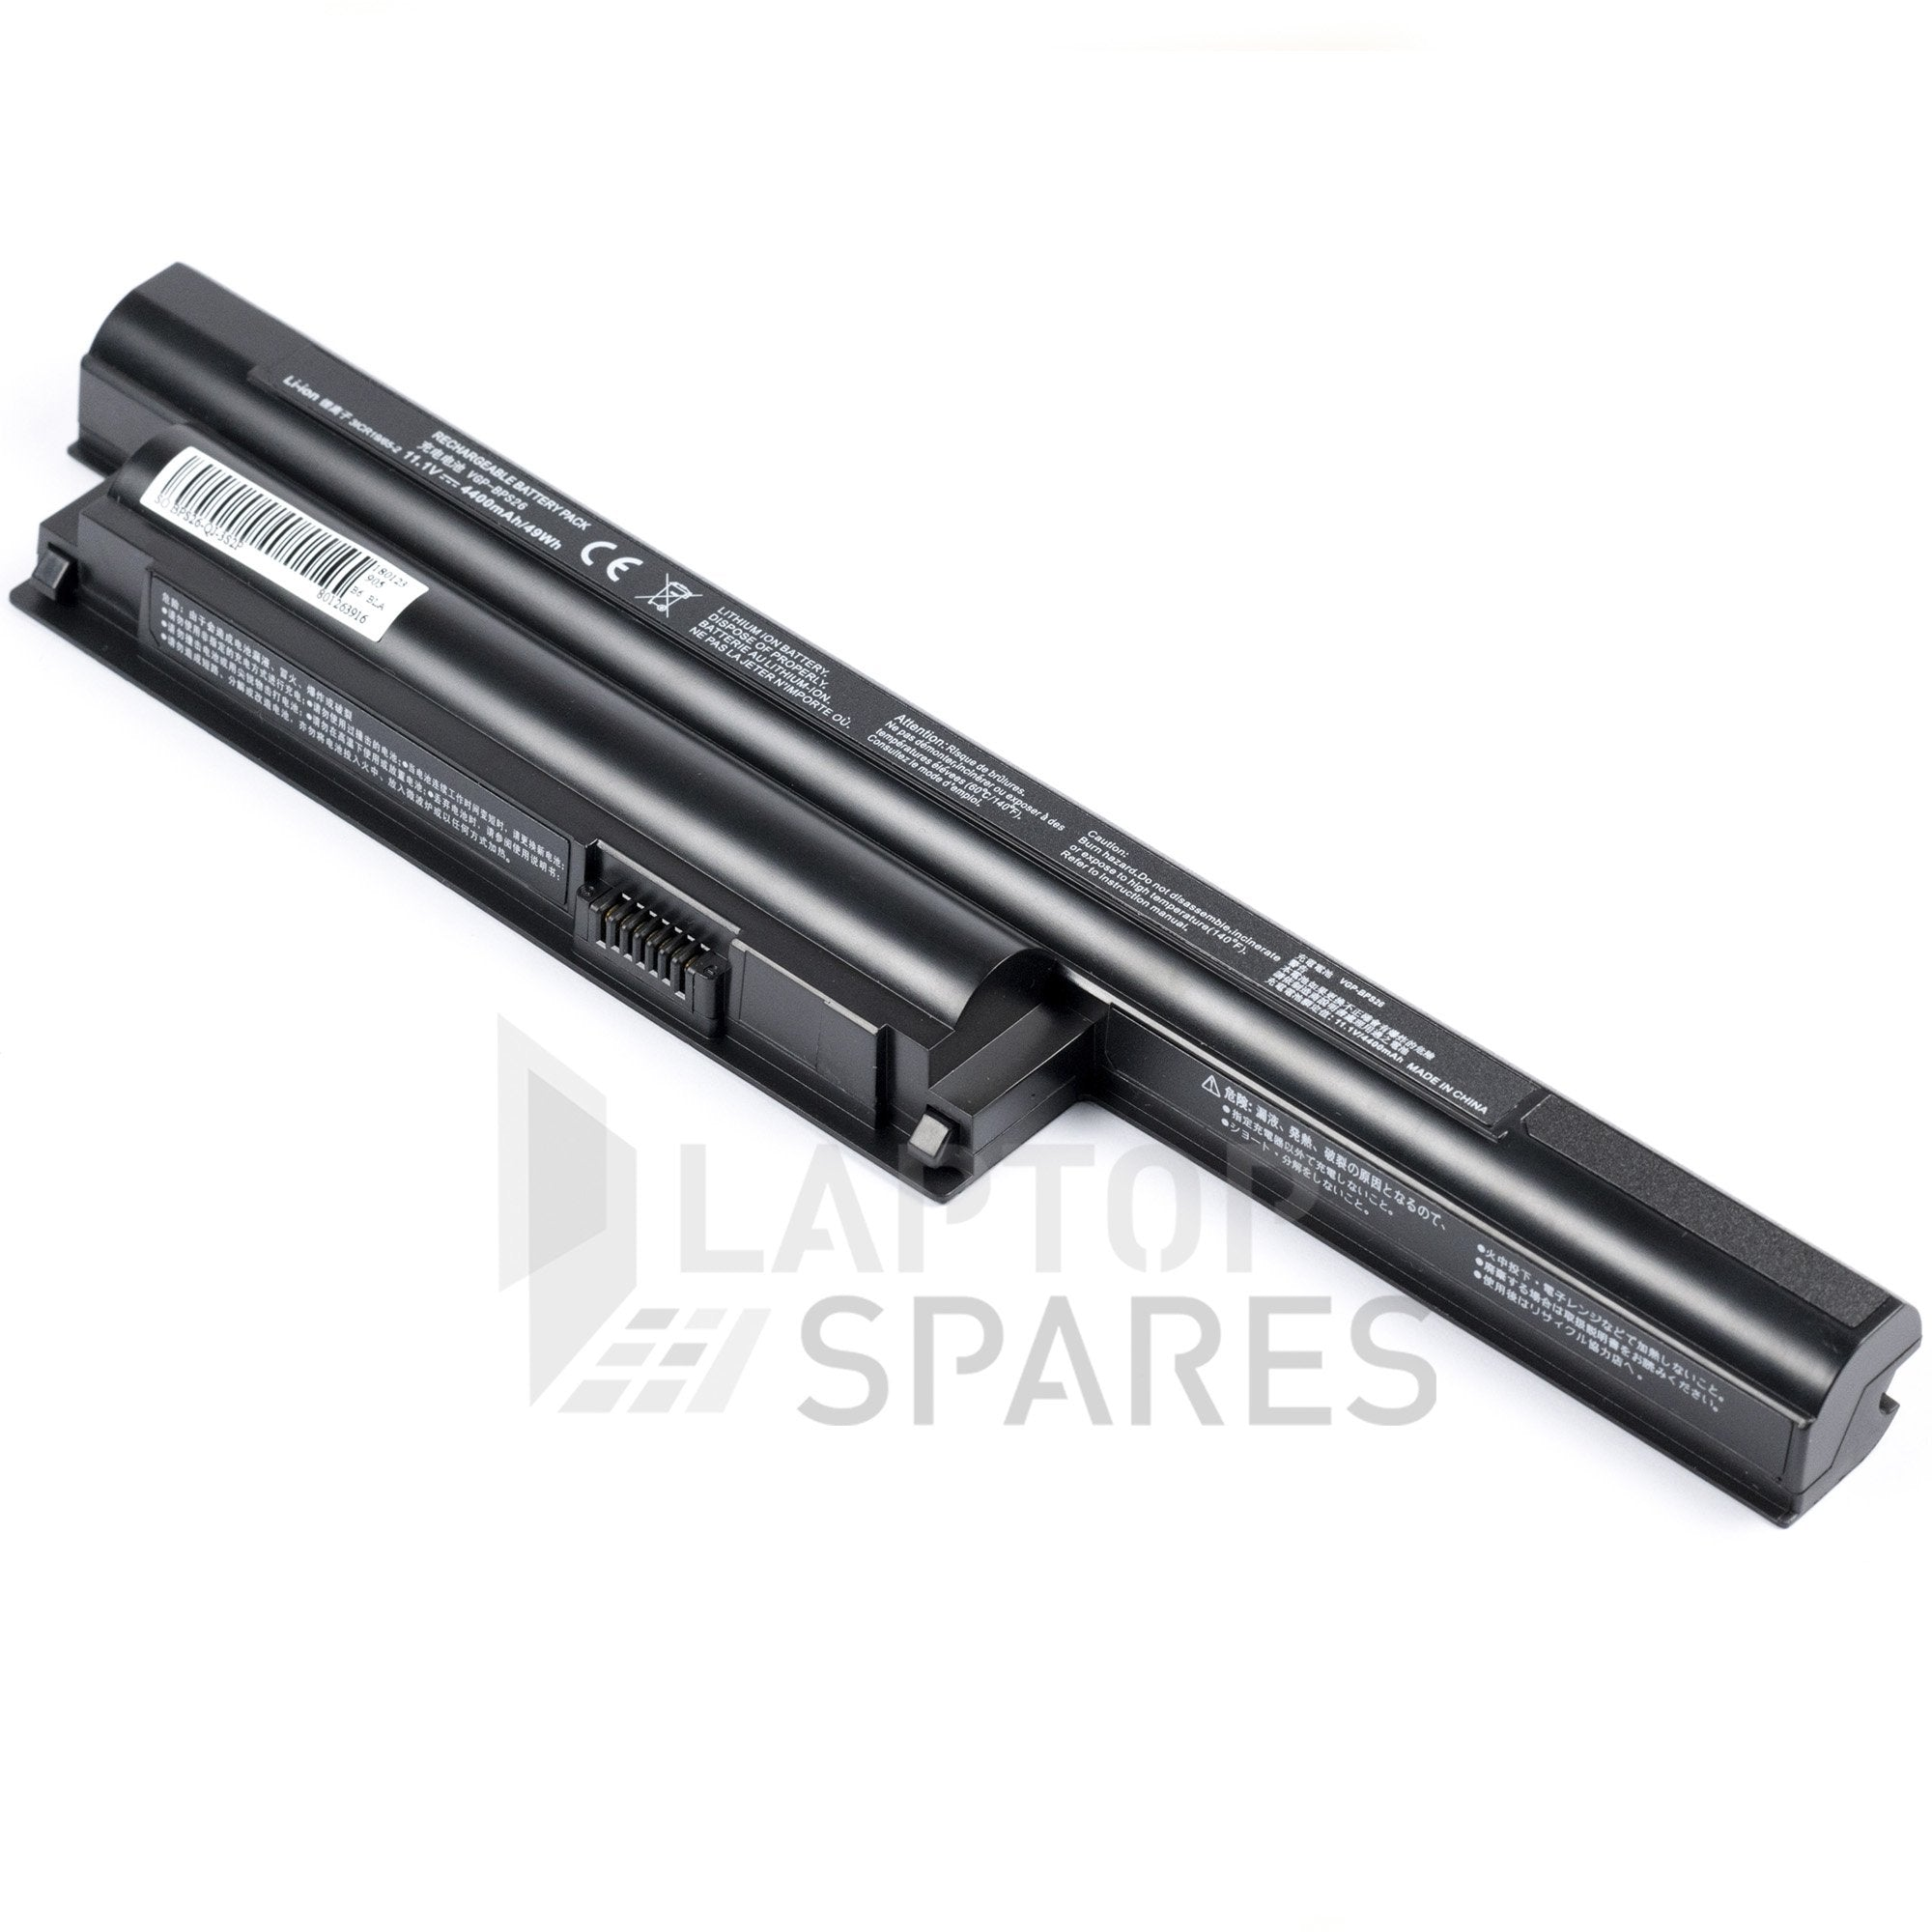 Sony Vaio VPC EH38FJ/B EH38FJ/P 4400mAh 6 Cell Battery